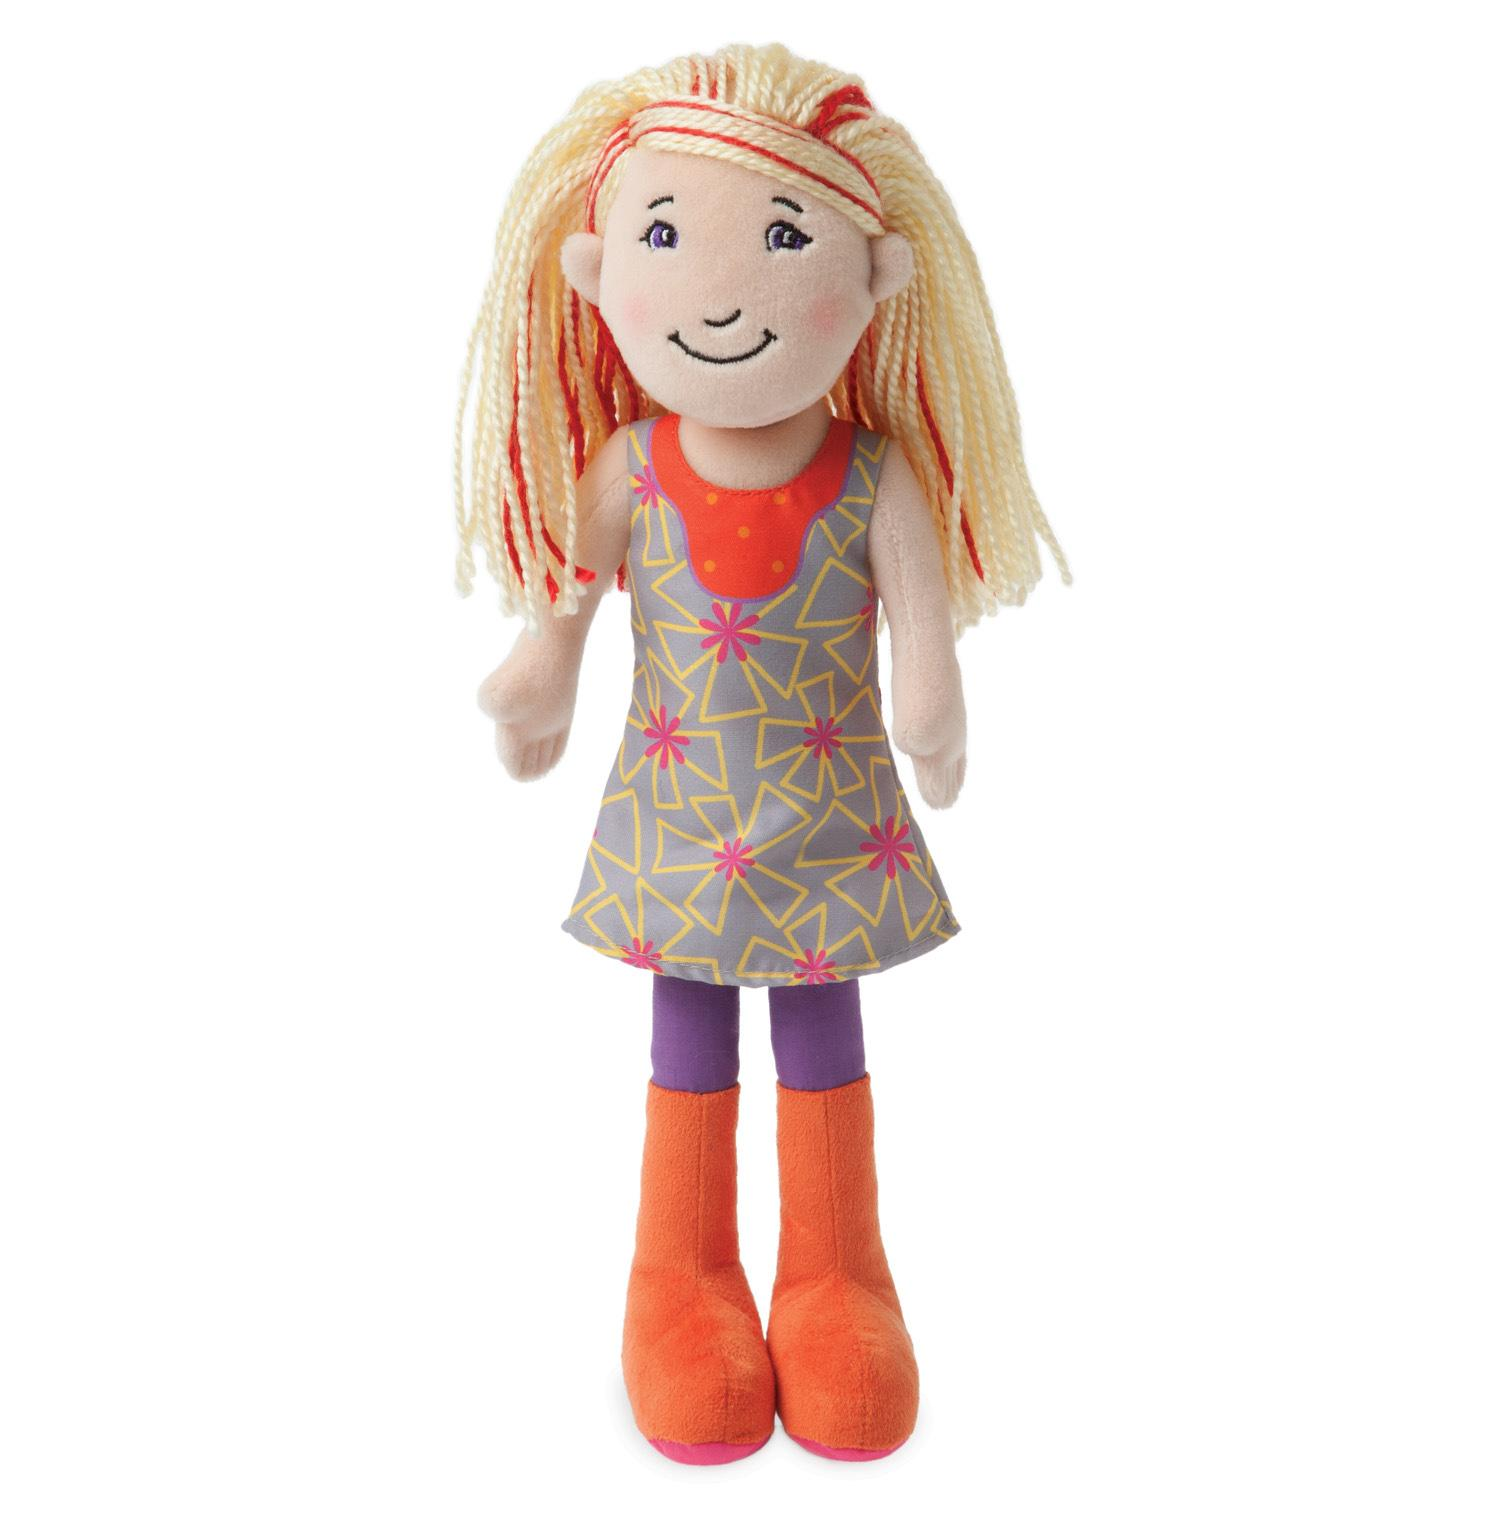 Girl Toys Doll : Amazon manhattan toy groovy girls layla fashion doll